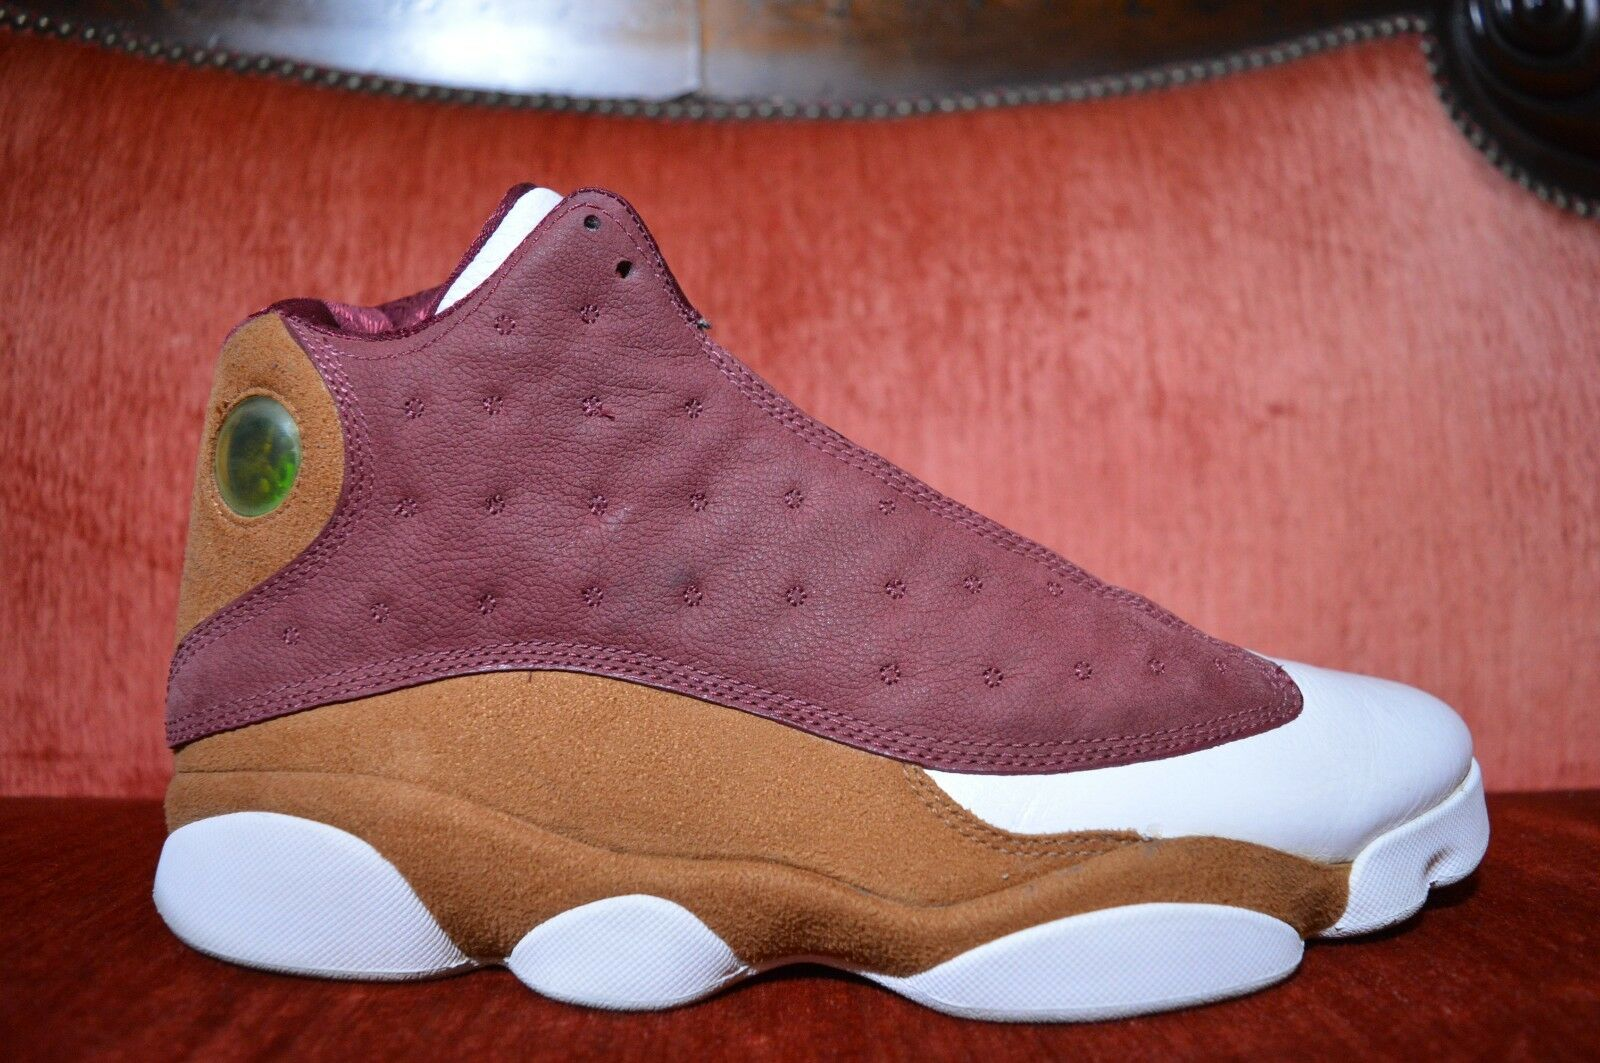 c973529668bef9 ... CLEAN Nike Air Jordan 13 XIII Bin Retro Premio Bin XIII 23 417212 601  Red White ...